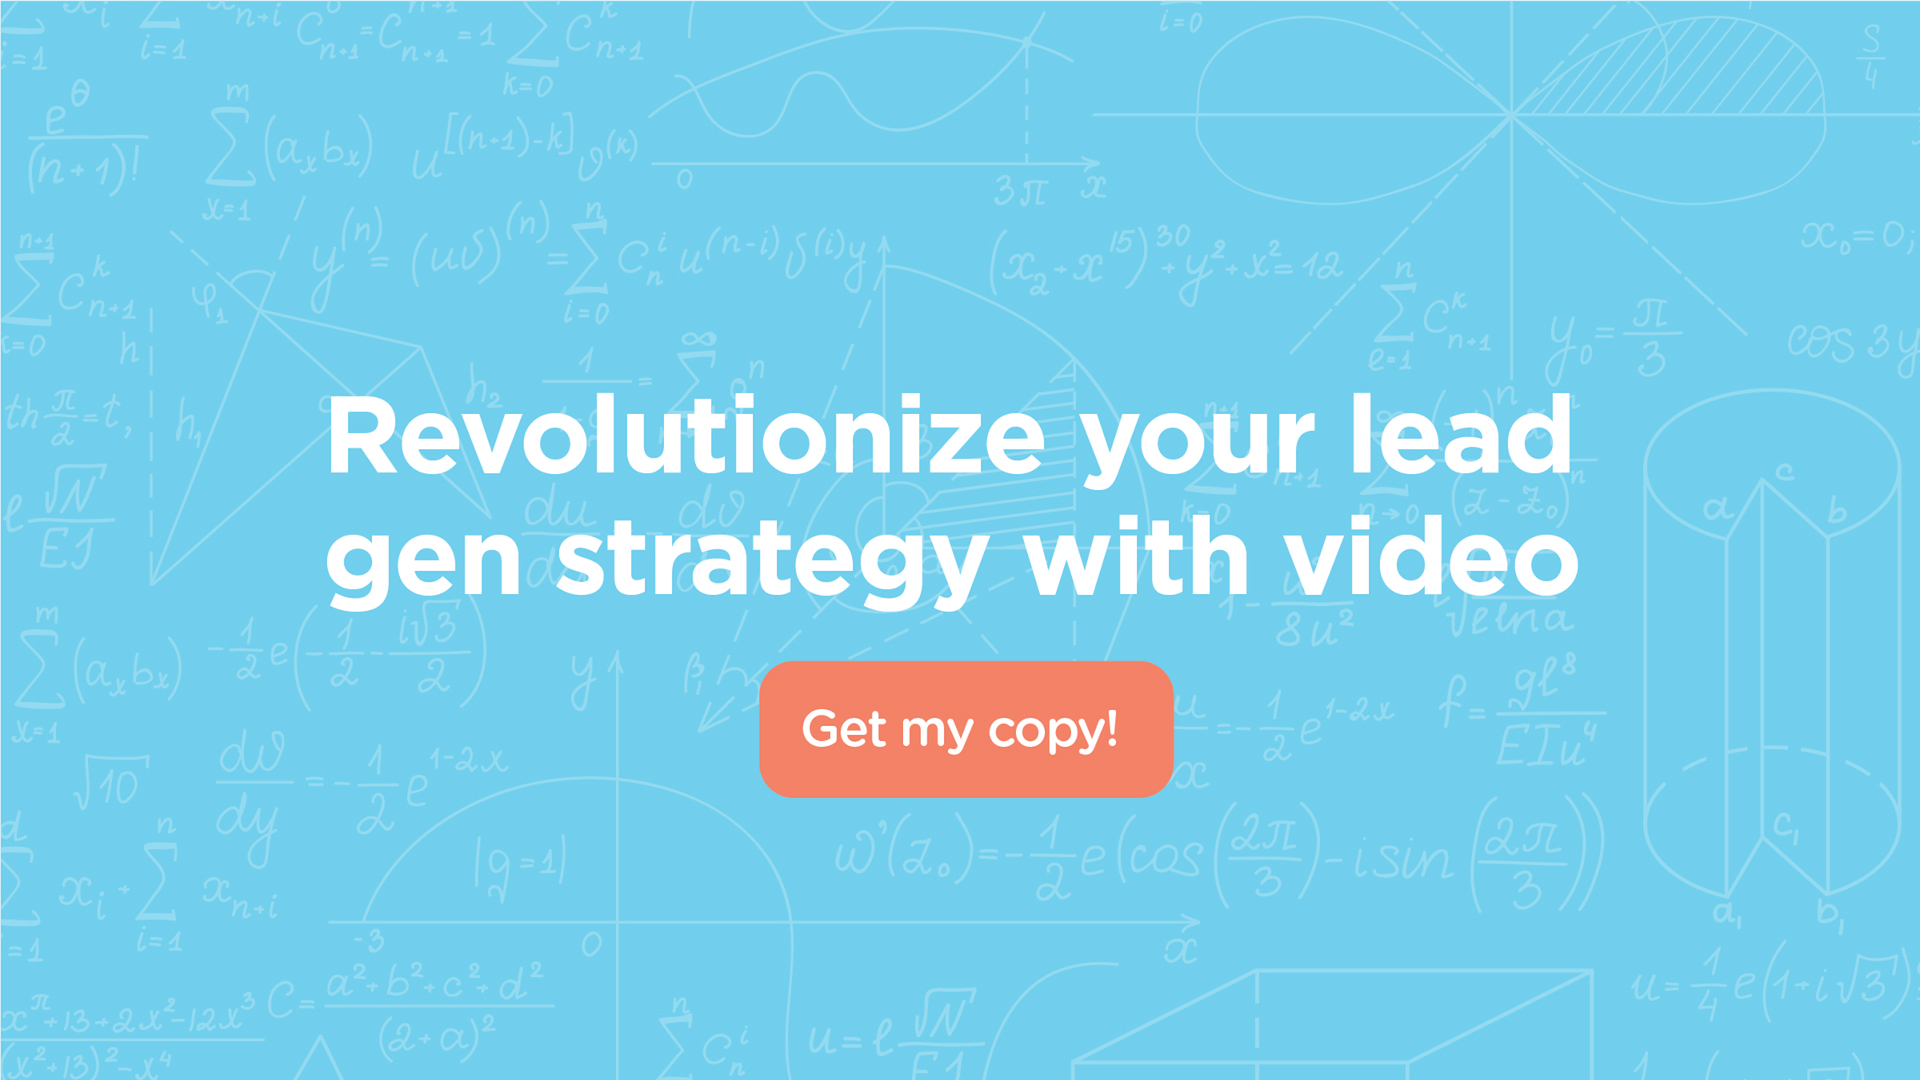 Using Video for Lead Geneartion, Scoring & Nurtures